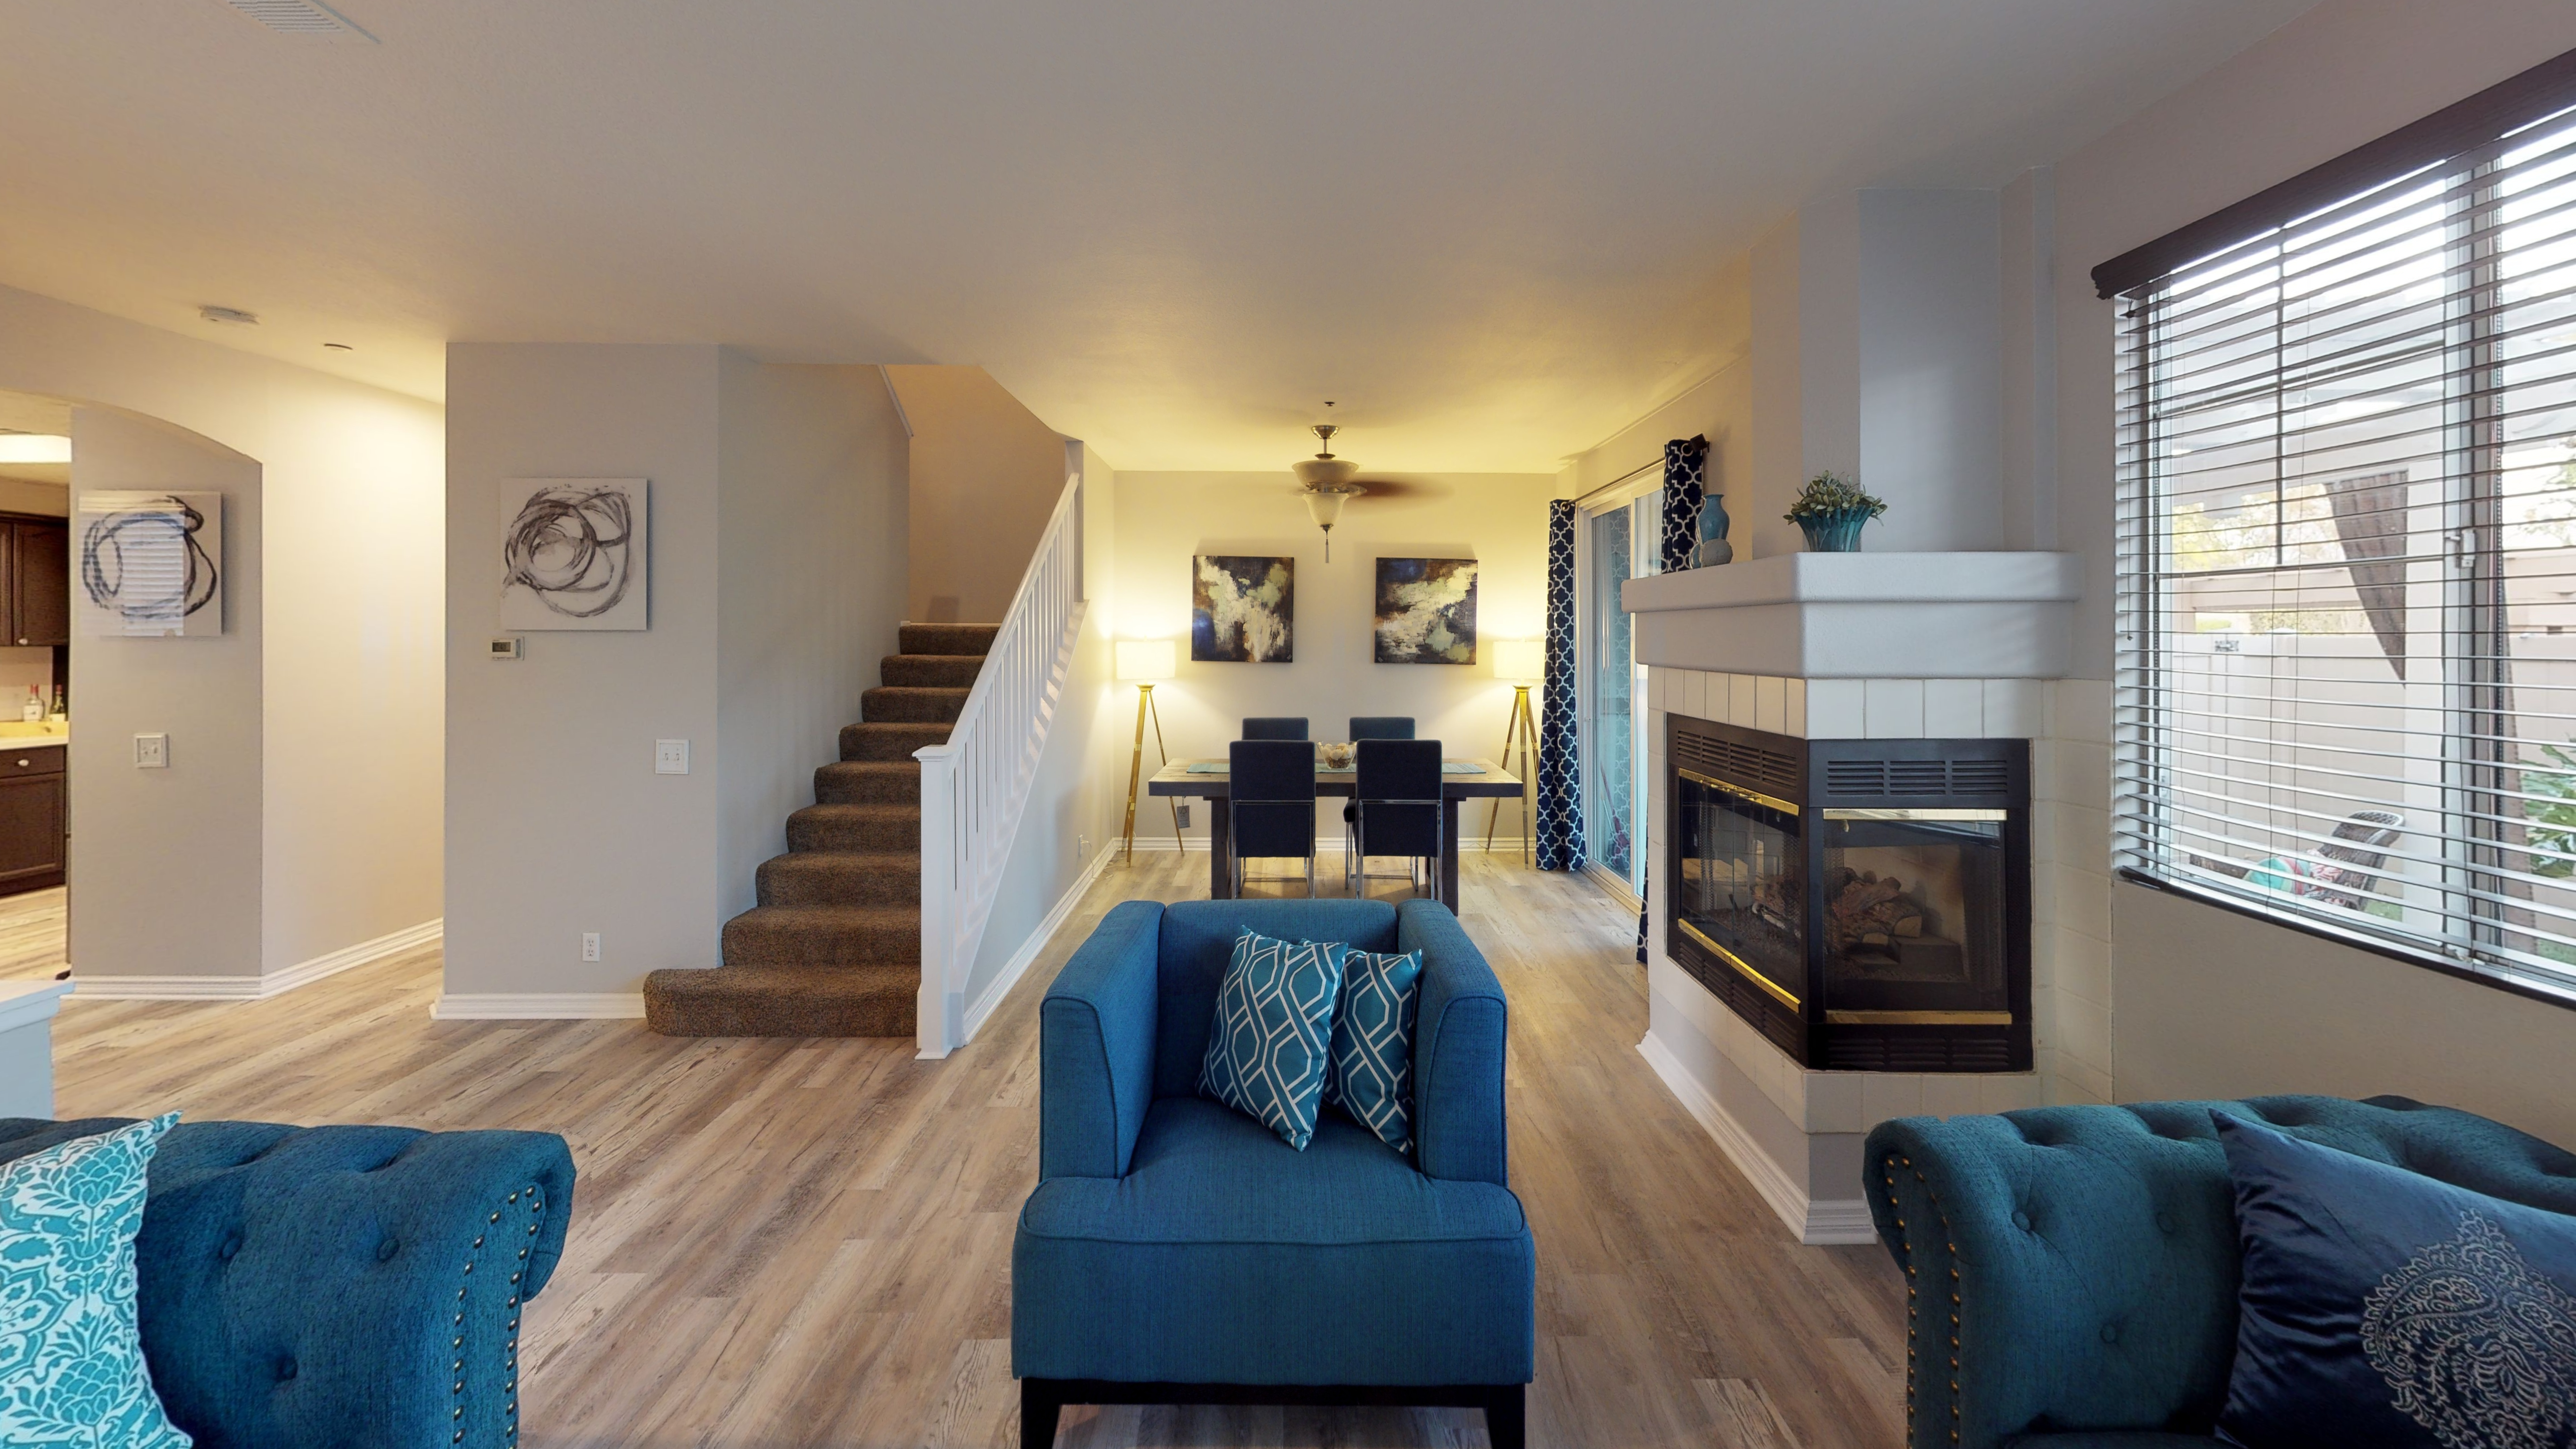 Chic Condo in Friendly Neighborhood Completely Remodeled